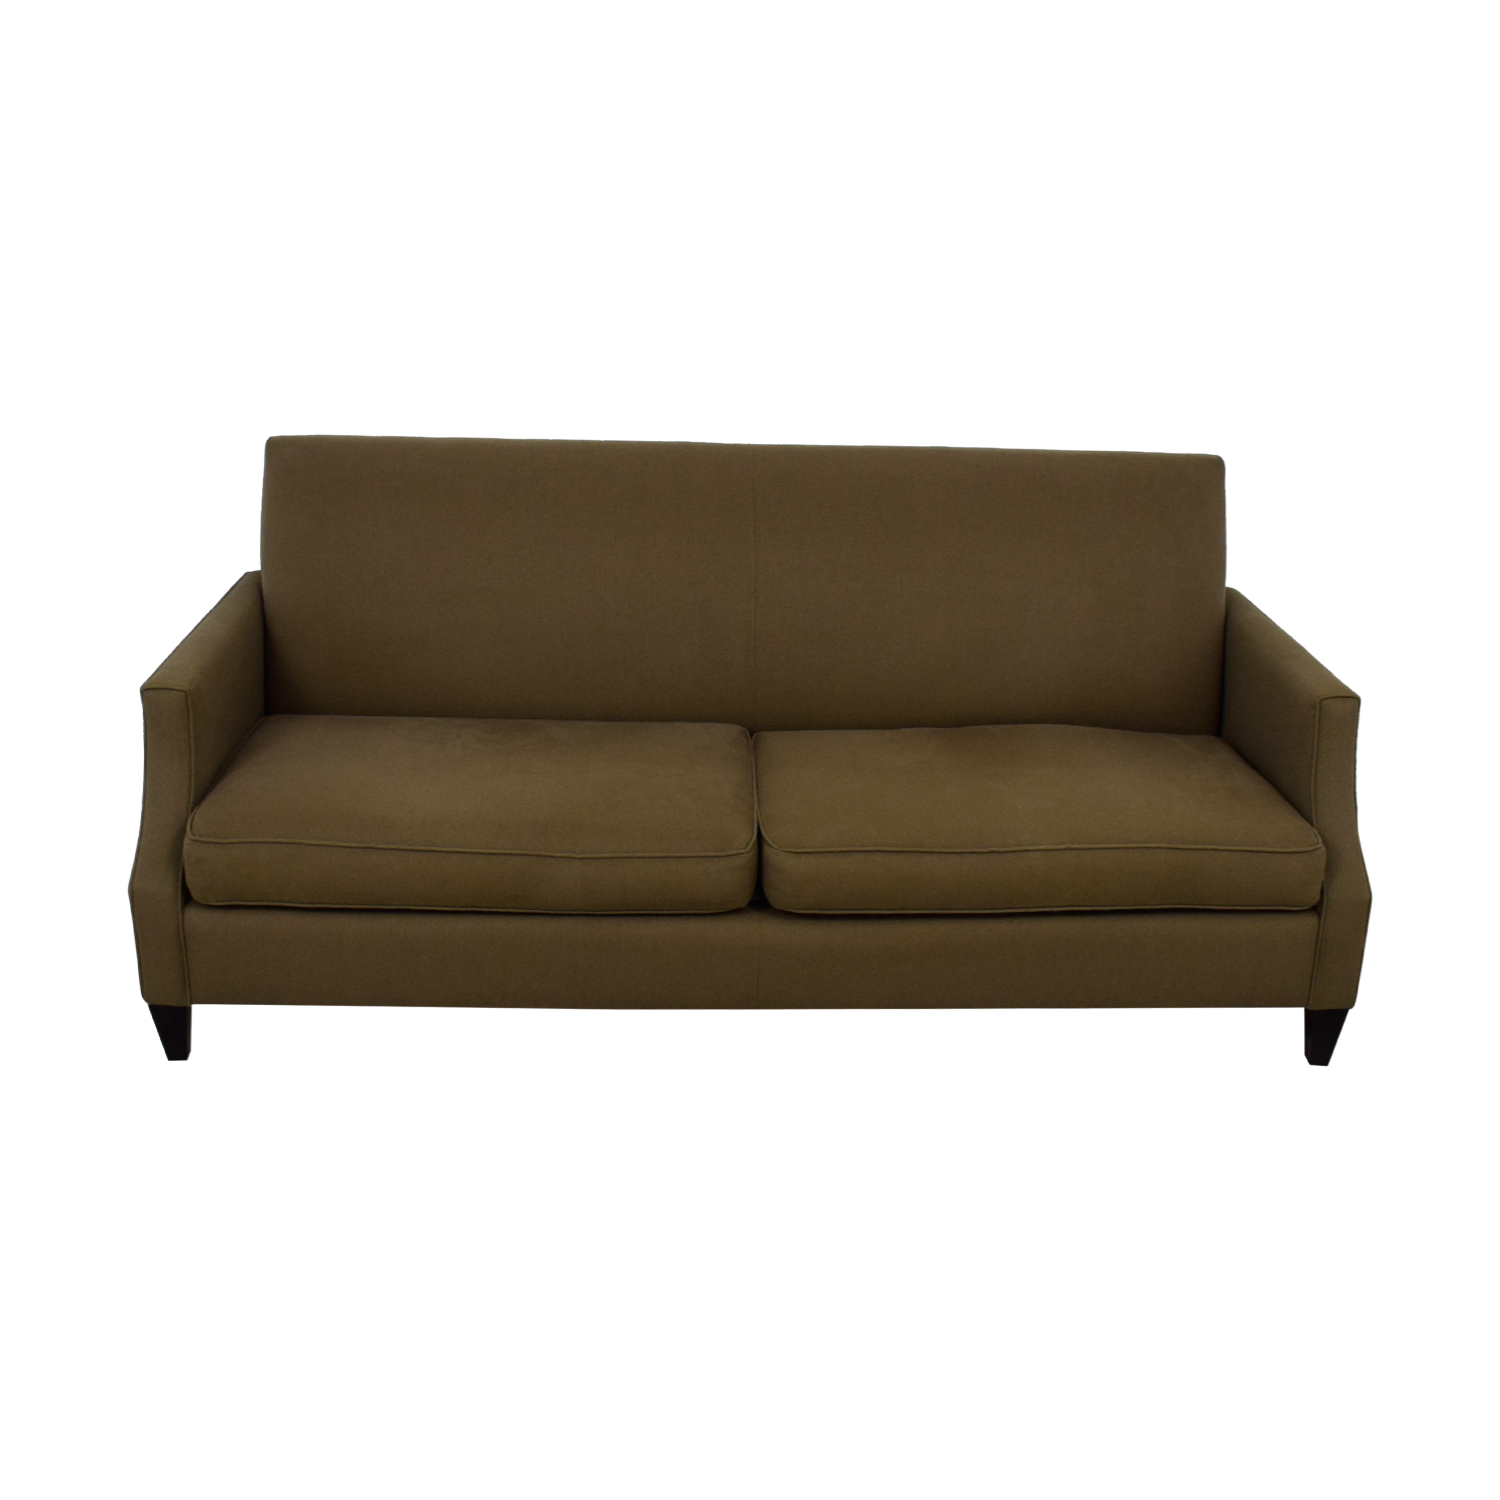 Crate and Barrel Crate & Barrel Grey Two-Cushion Sofa nj